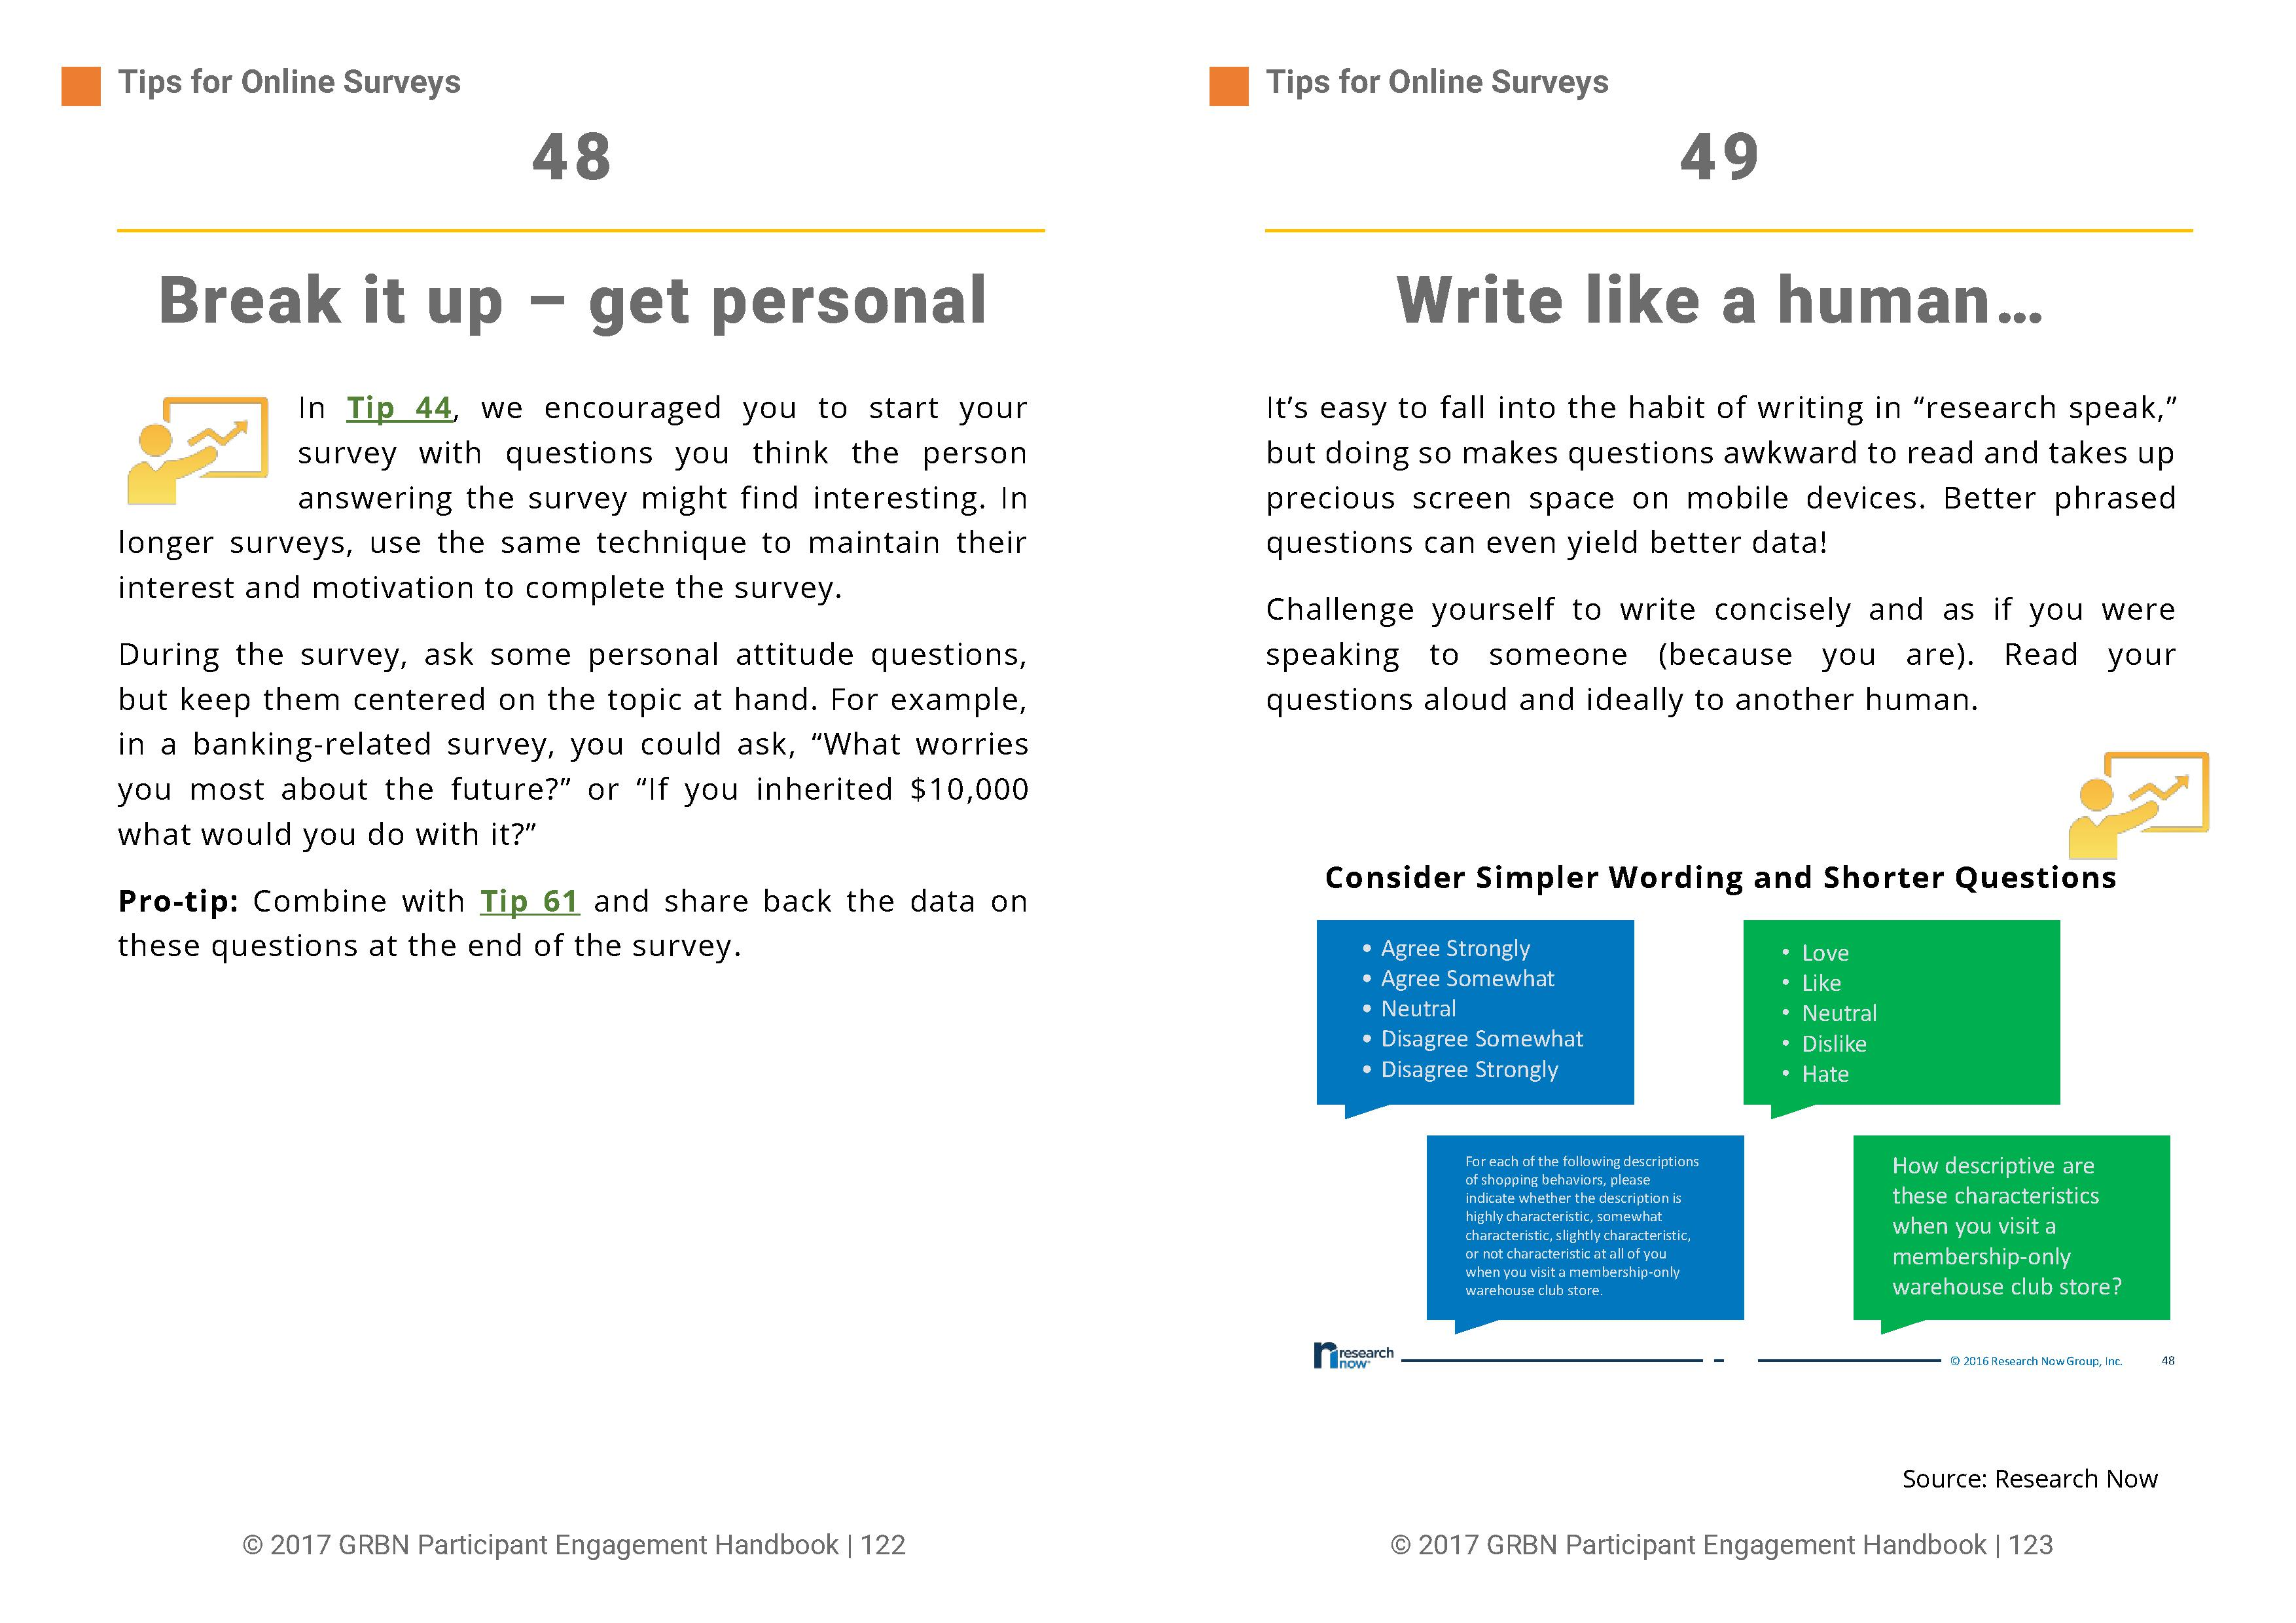 101 Tips to Improve the Research Participant User Experience - 62/118